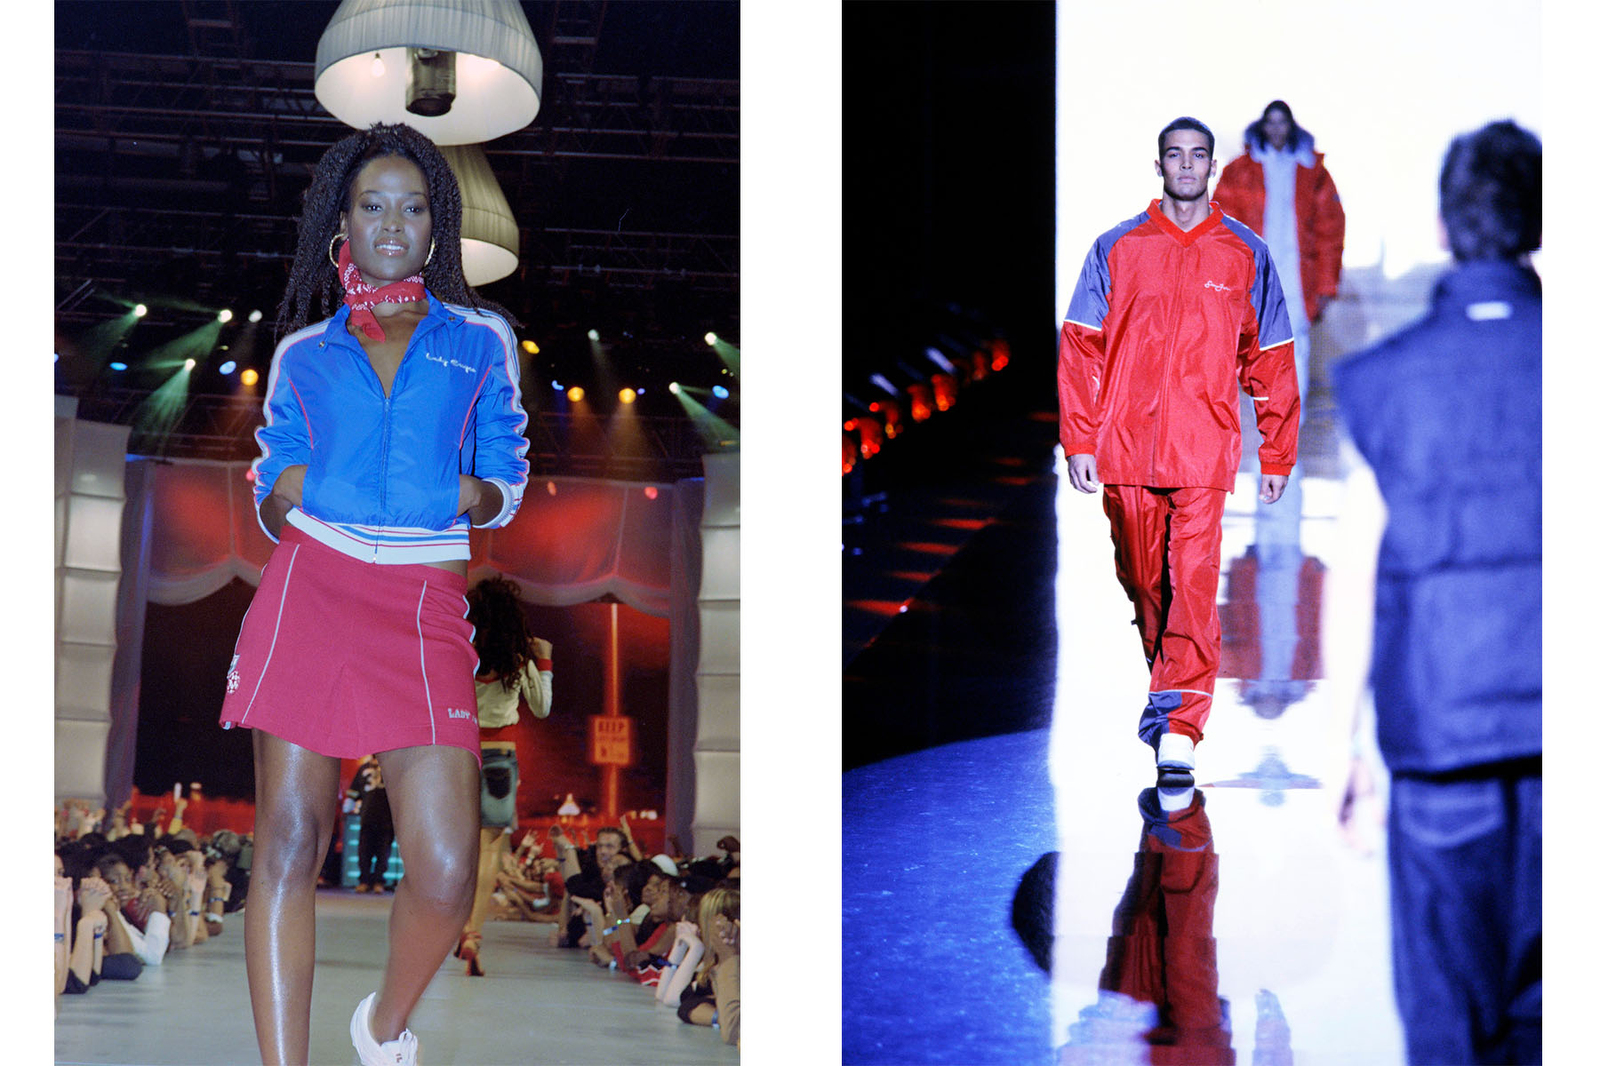 (L-R) MTV Fashionably Loud Event-Lady Enyce Urban Sportswear for Spring 2003.Sean John Menswear Fall 2000 Ready to Wear Fashion Show.